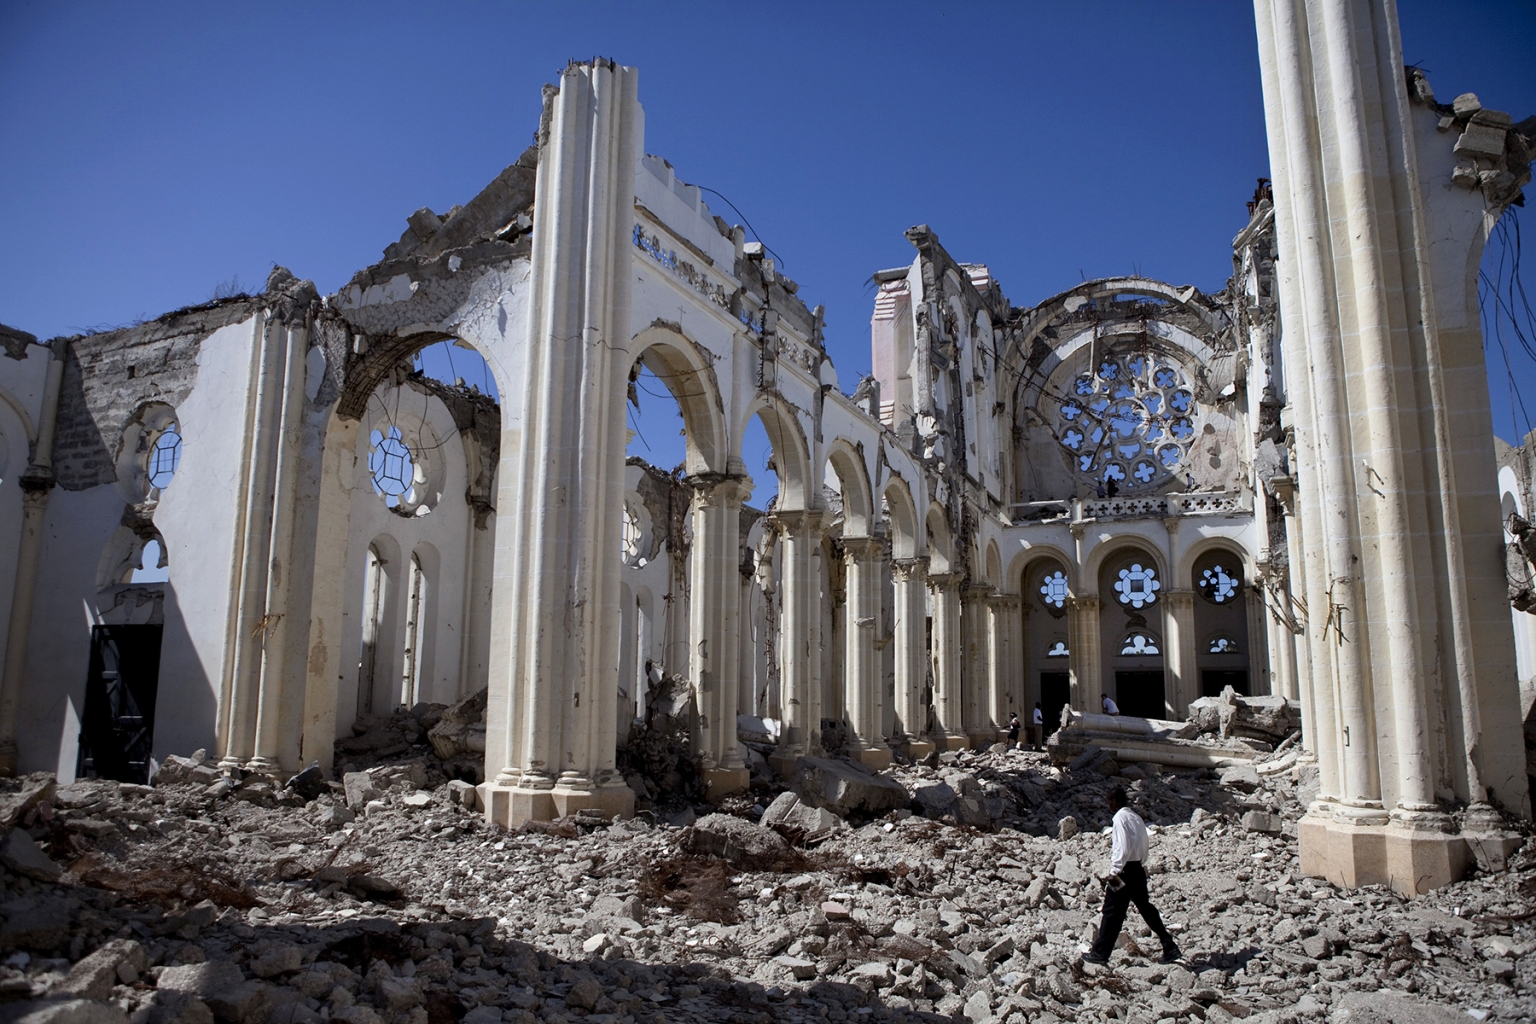 The remains of the Notre Dame Cathedral of Port-au-Prince, built between 1884 and 1914, after the devastating earthquake in Haiti, in January 2010. The National Palace and the Supreme Court also collapsed in the quake that killed an estimated 230,000. (Jonathan Torgovnik/Getty Images)